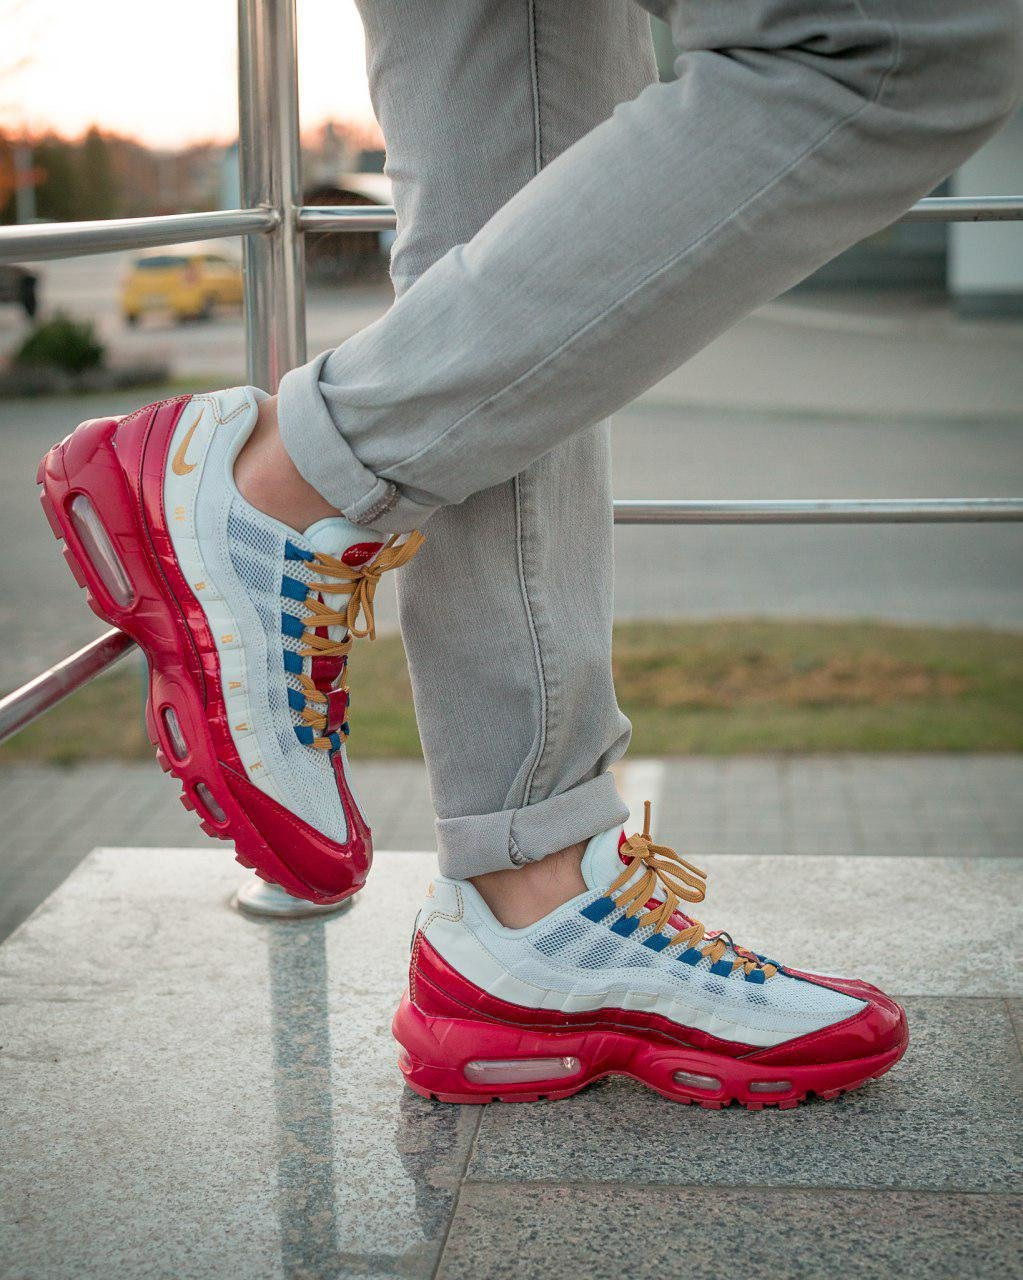 Кроссовки NK Air Max 95 Red White ( Реплика ААА+ ), 40